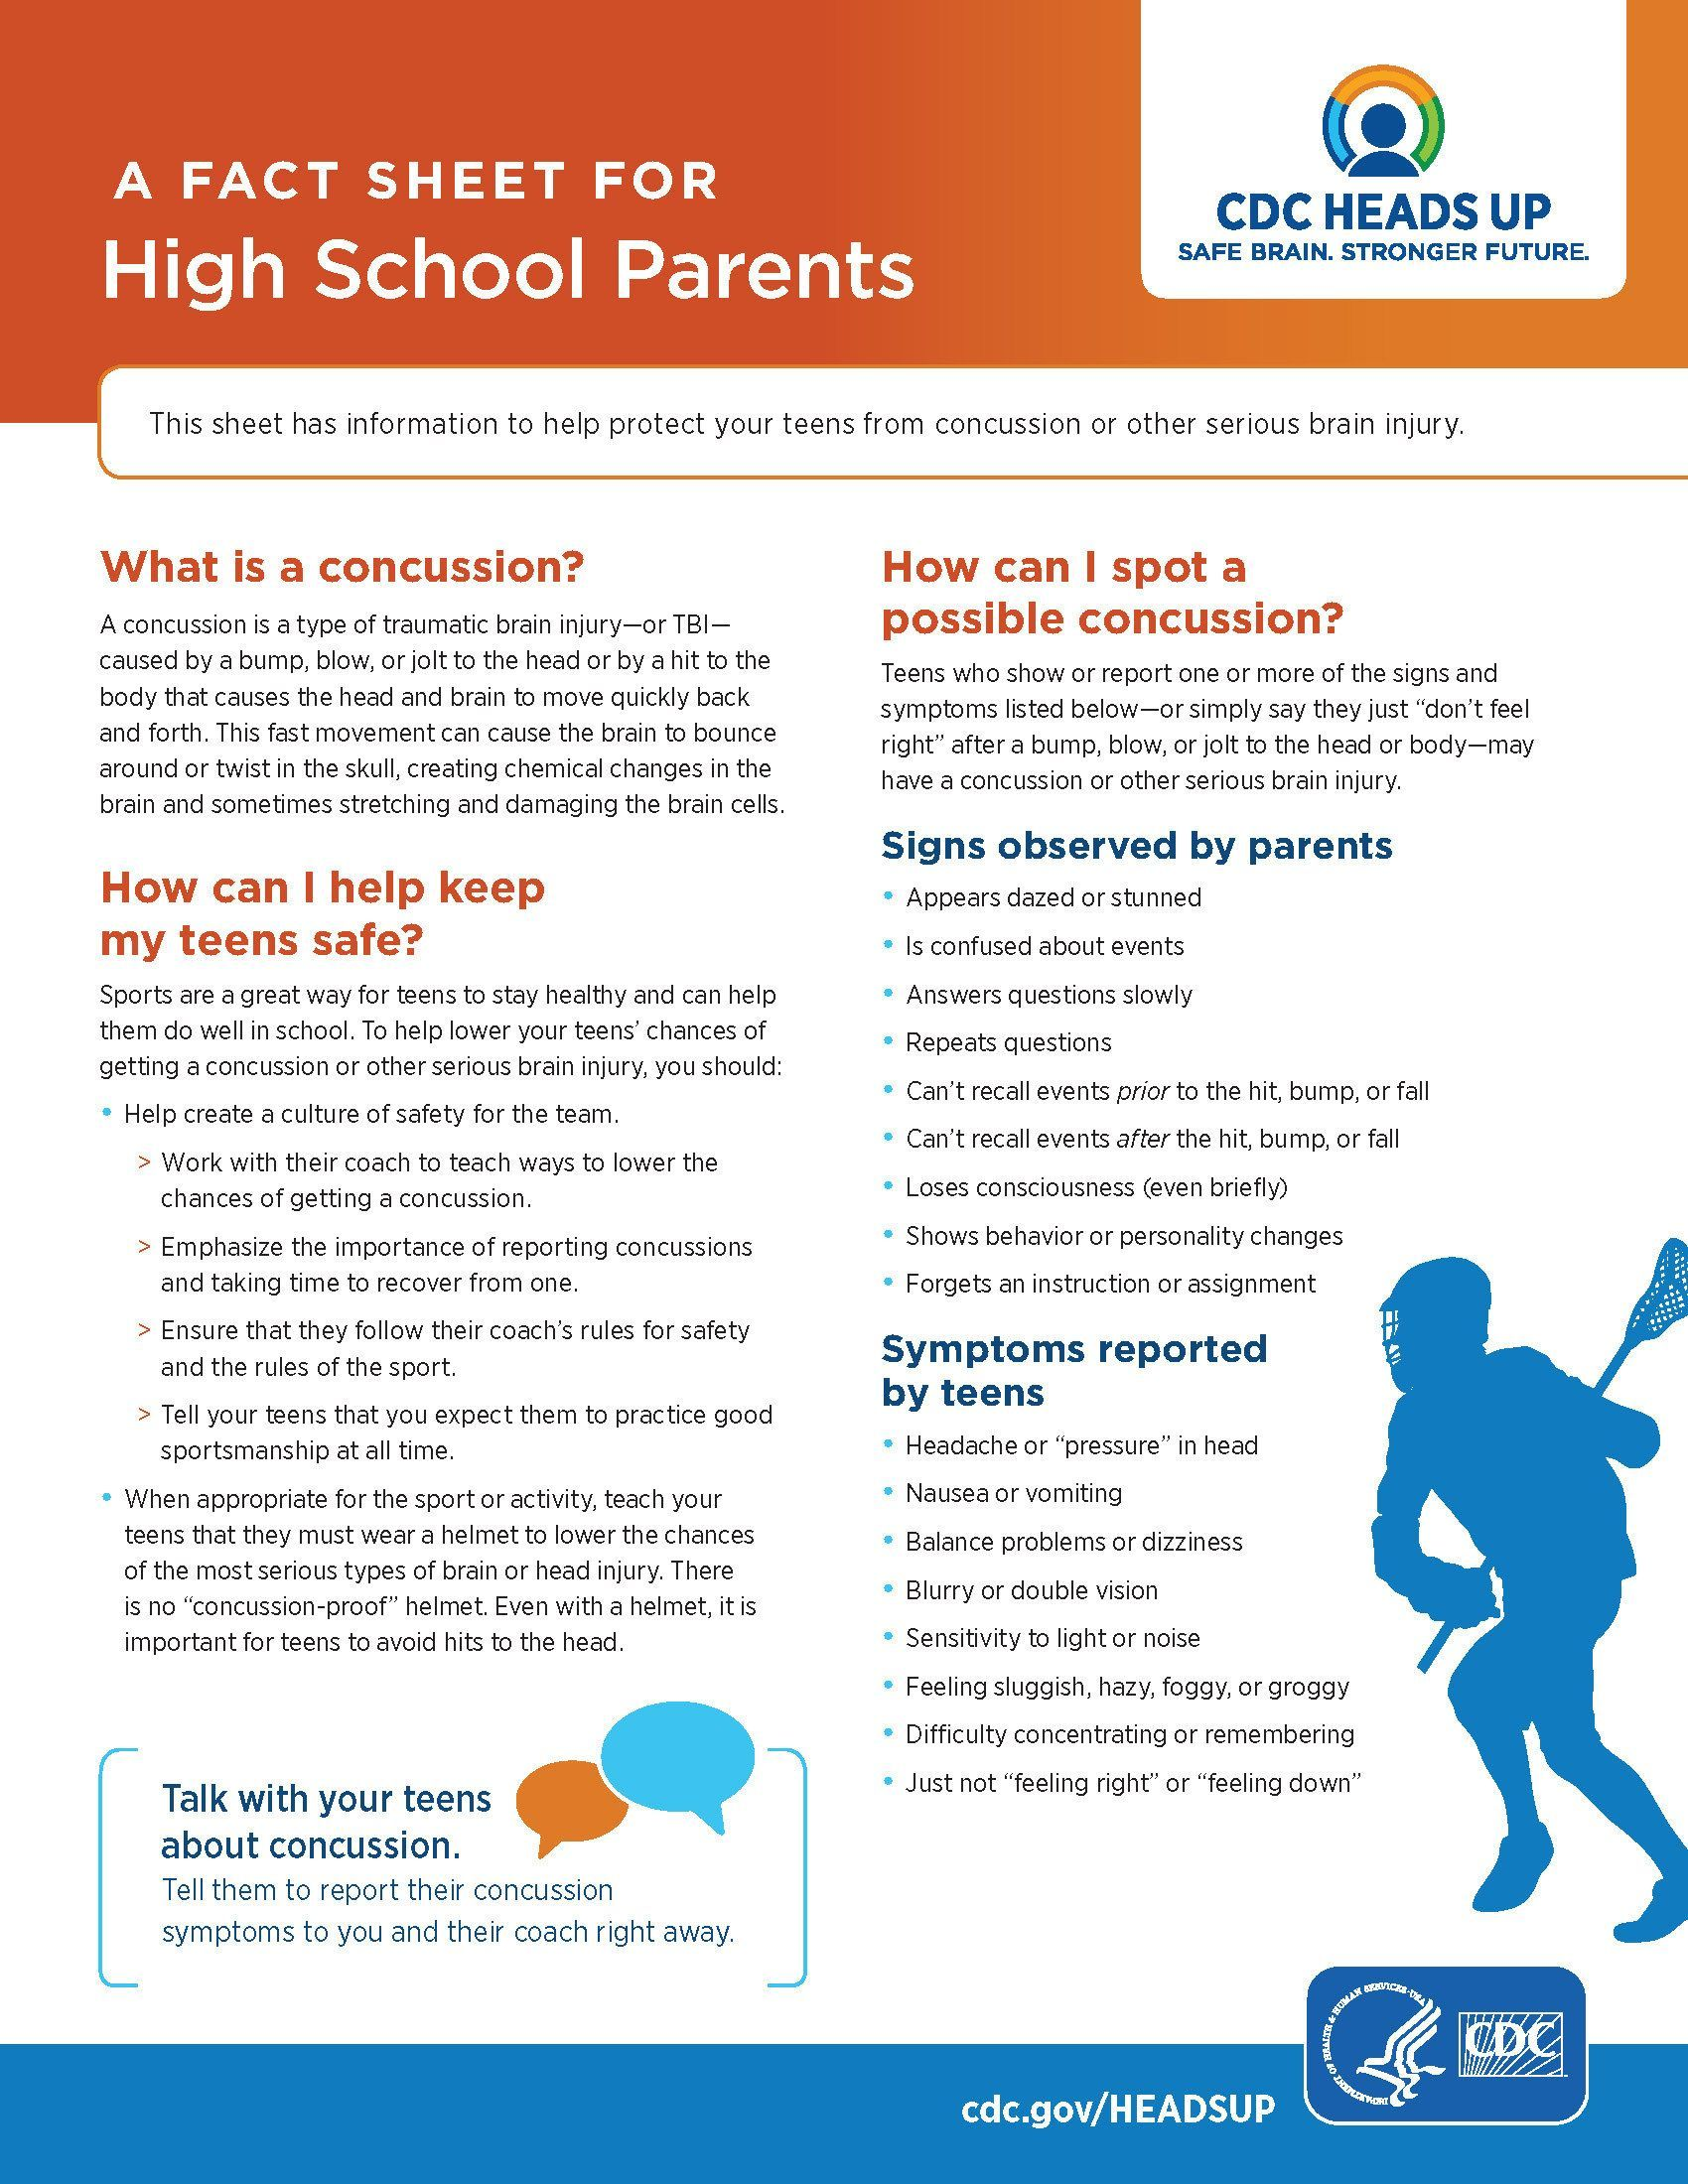 If you think you or your child may have a concussion, view the CDC's Heads Up! Parents Fact Sheet here.